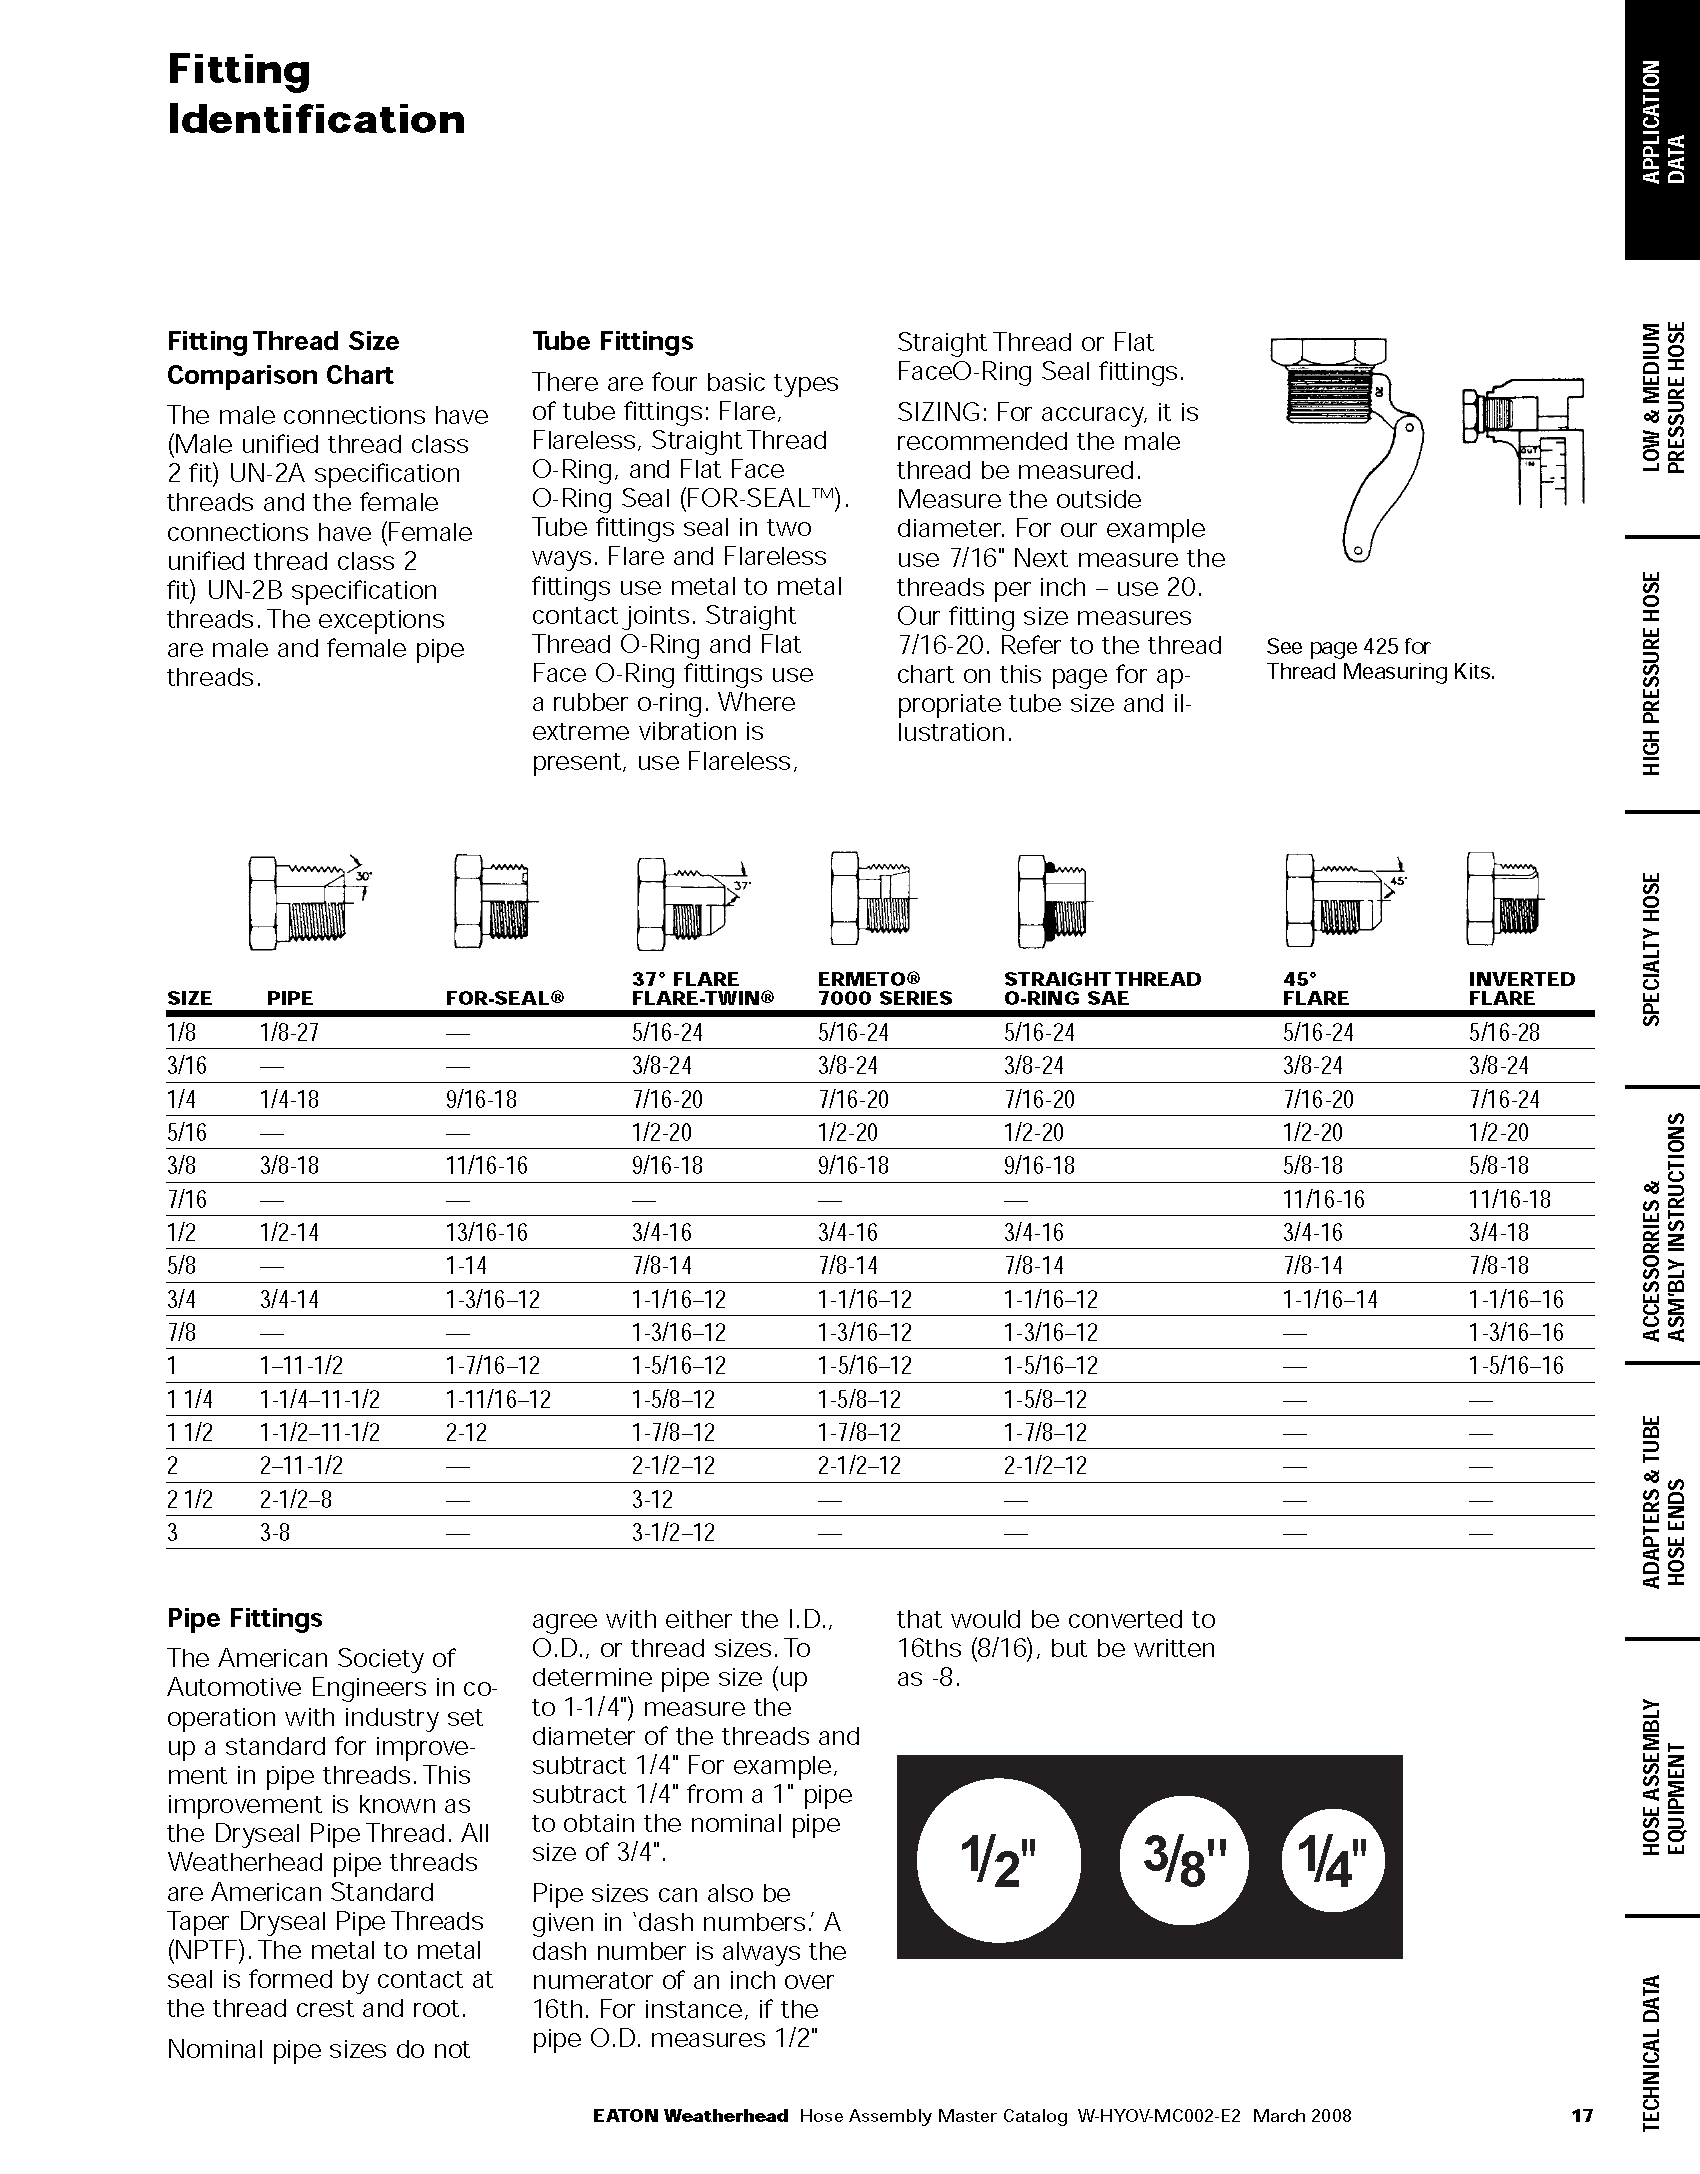 Hose selection guide Page 2  sc 1 st  HFI Fluid Power Products & Hydraulic Fitting Identification Guide and Thread Charts